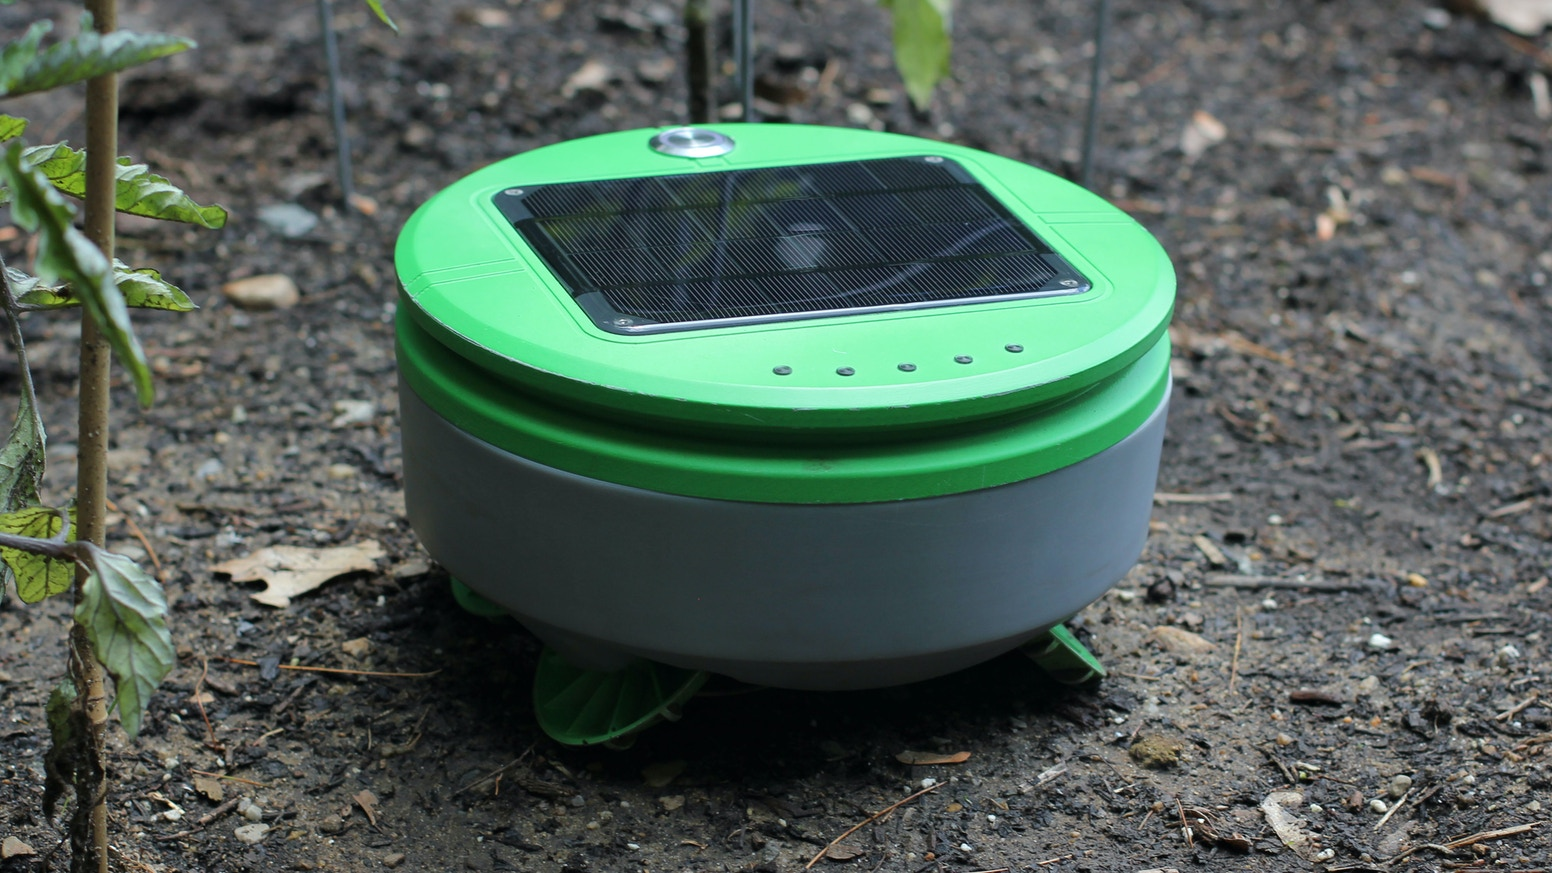 Solar-powered weed cleaner Textile. Click.